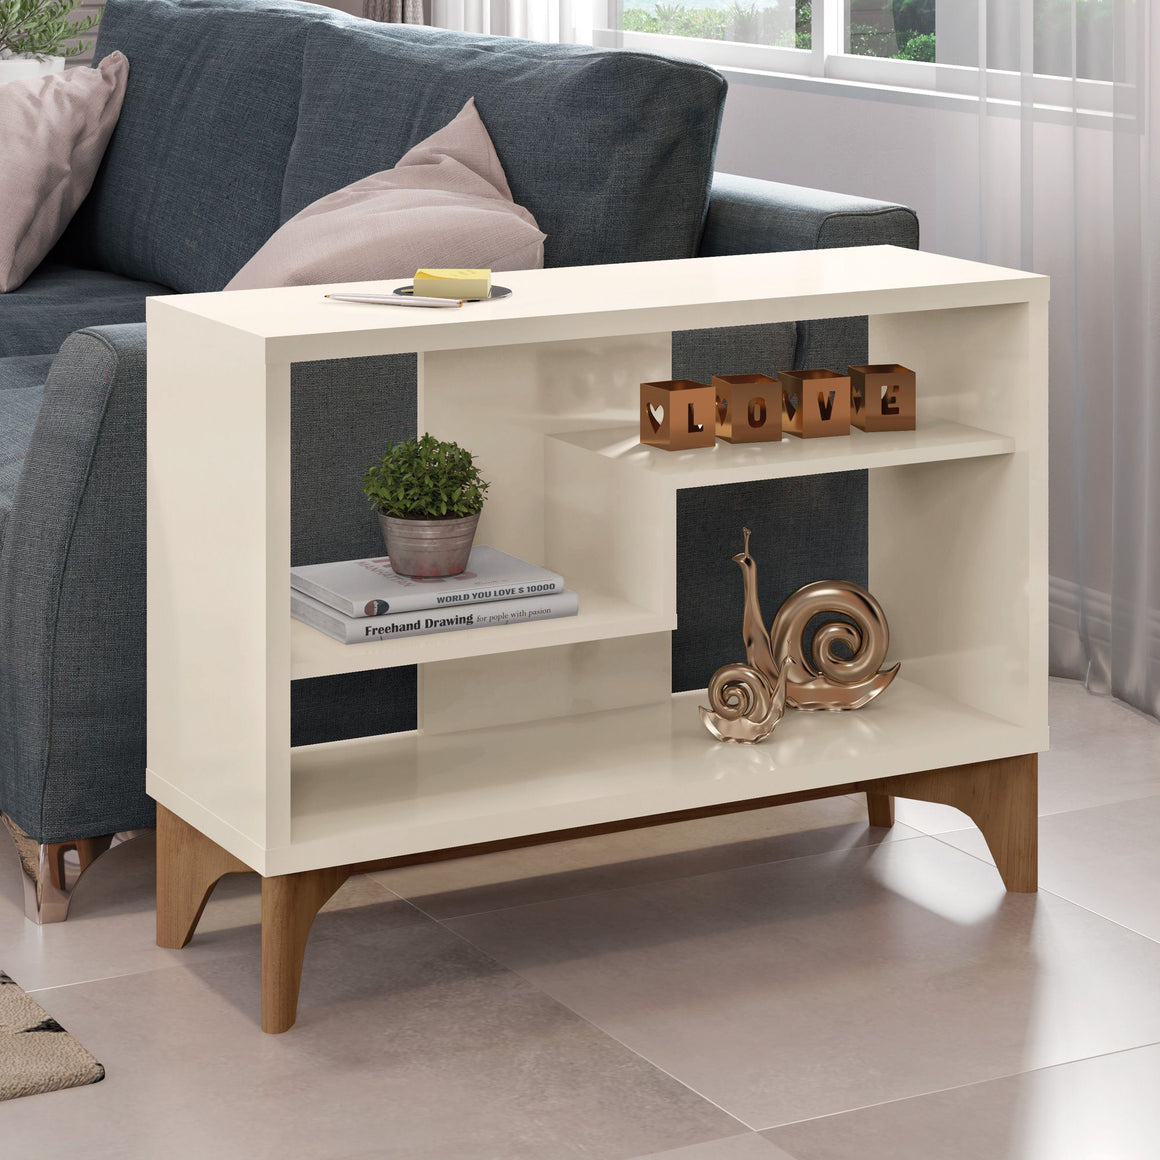 Gowanus Modern Accent Display Sideboard with 2 Shelves in Off White